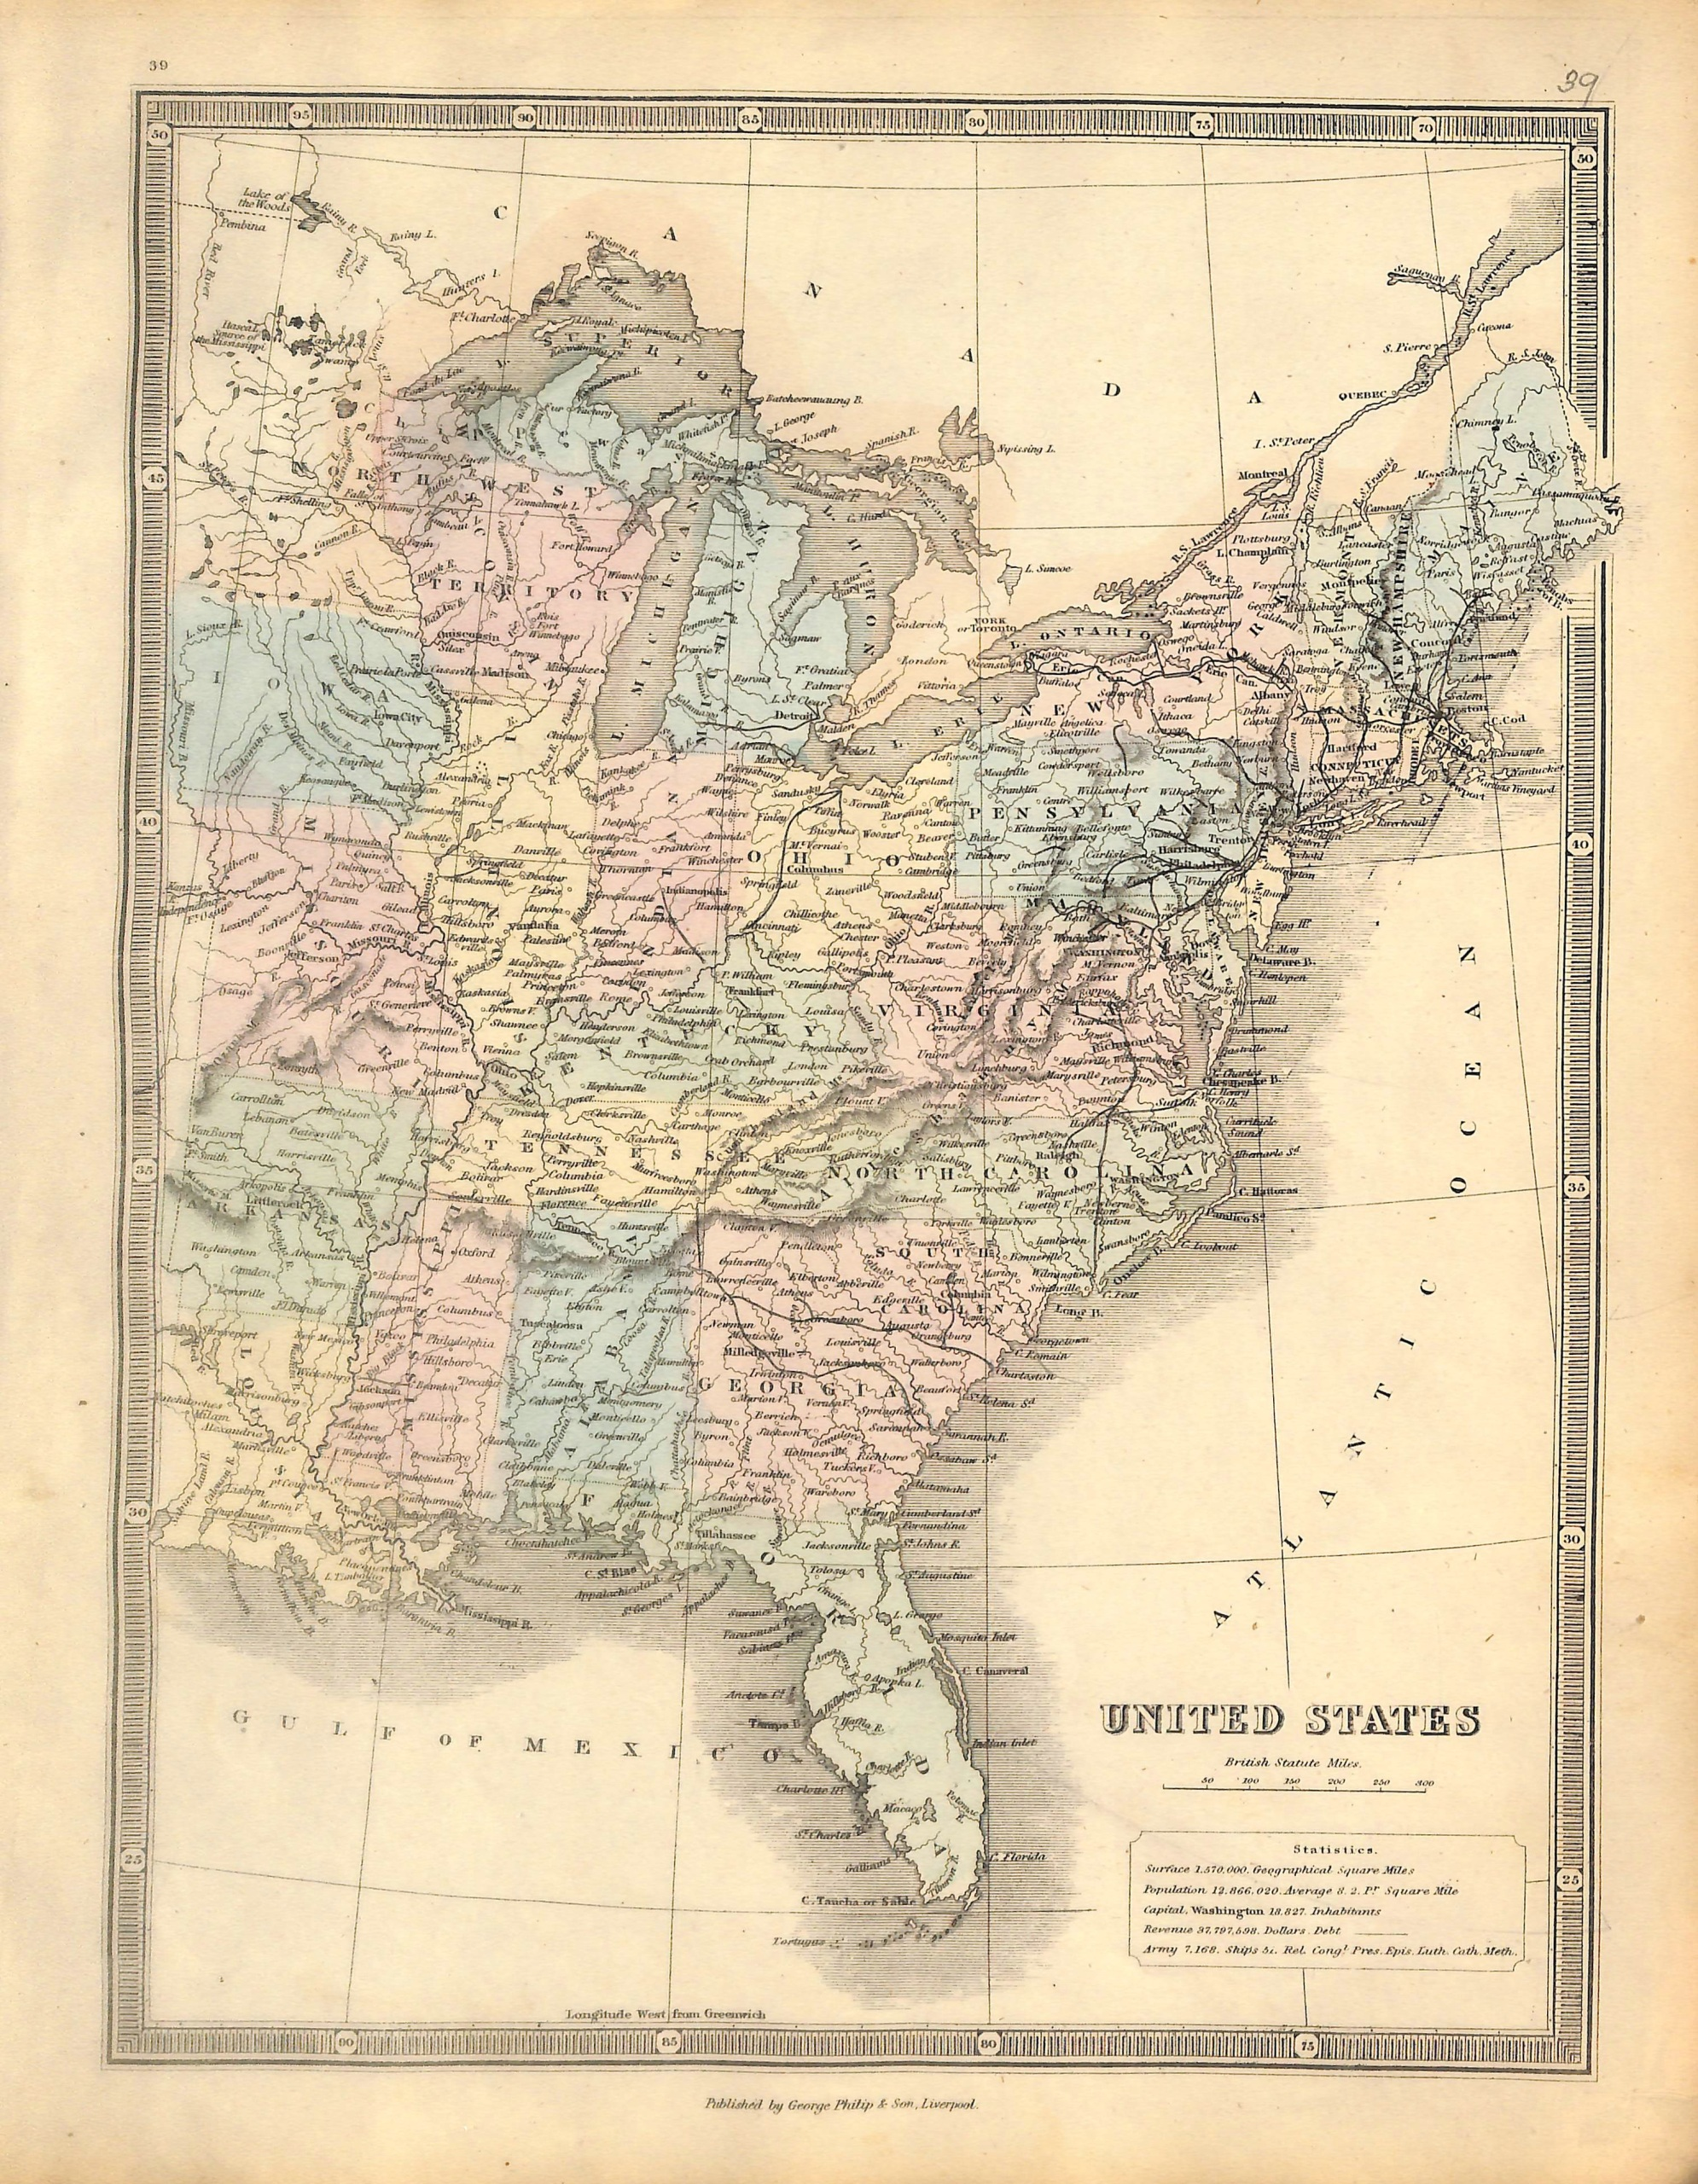 United States, Central and Eastern United States, U.S., Map, 1853